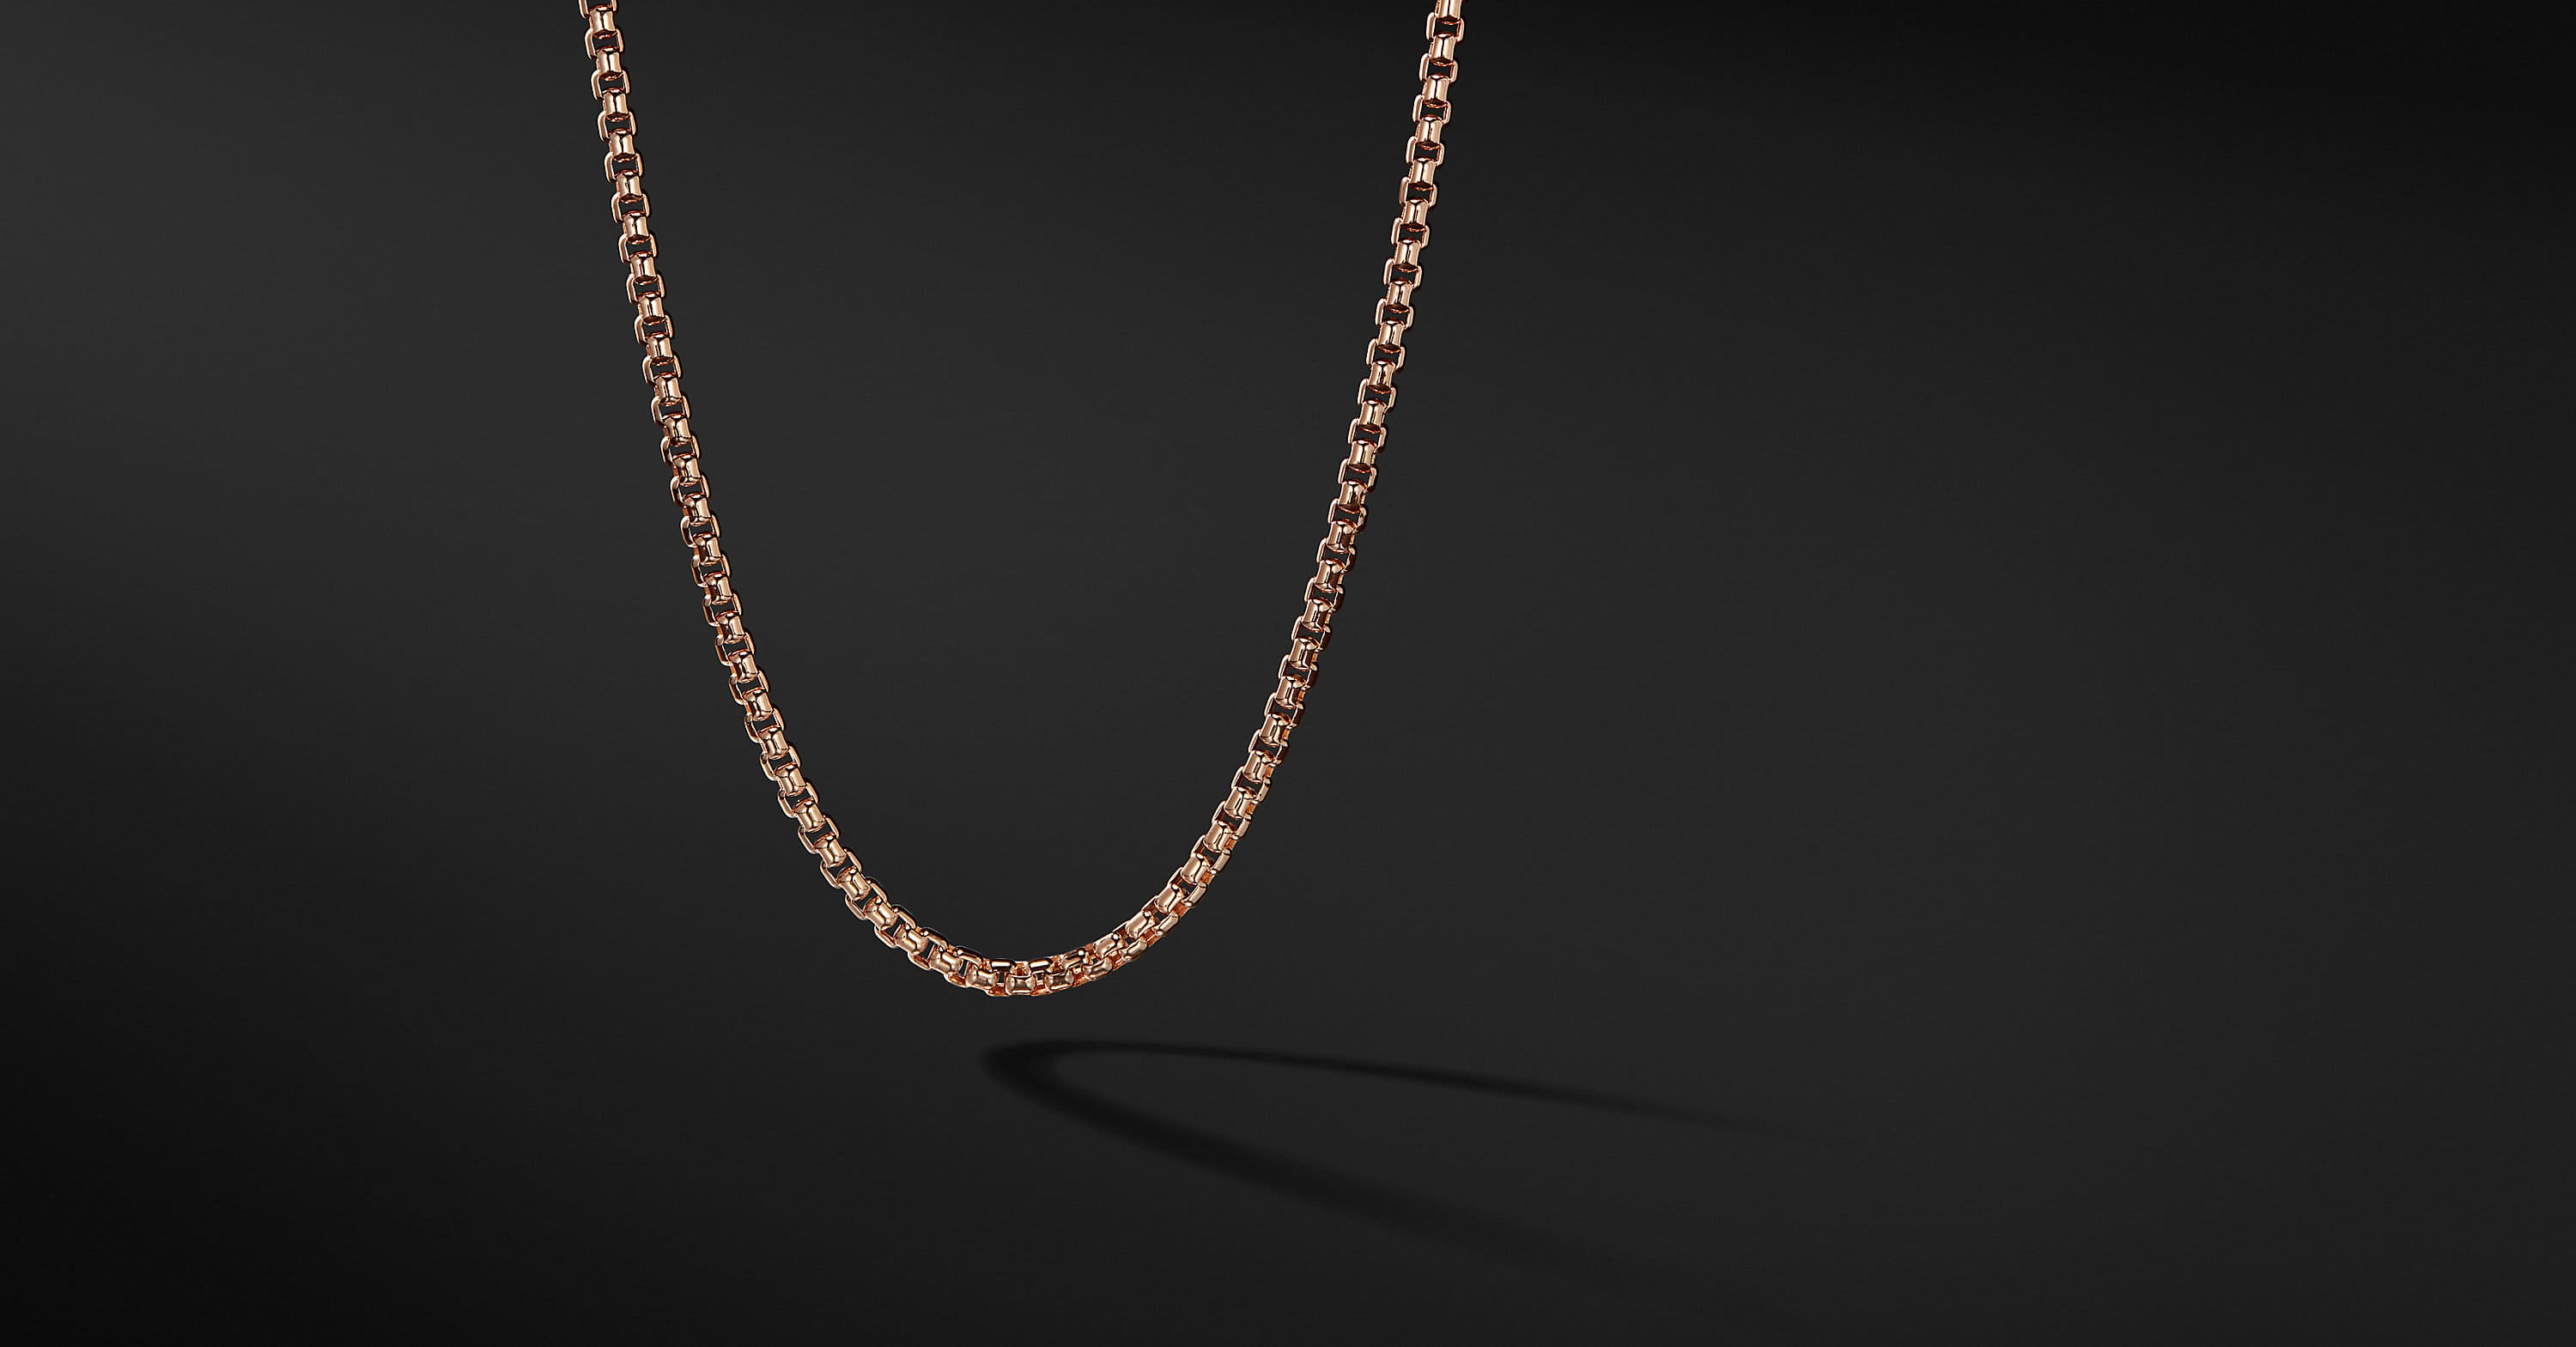 Medium Box Chain Necklace in 18K Rose Gold, 3.4mm